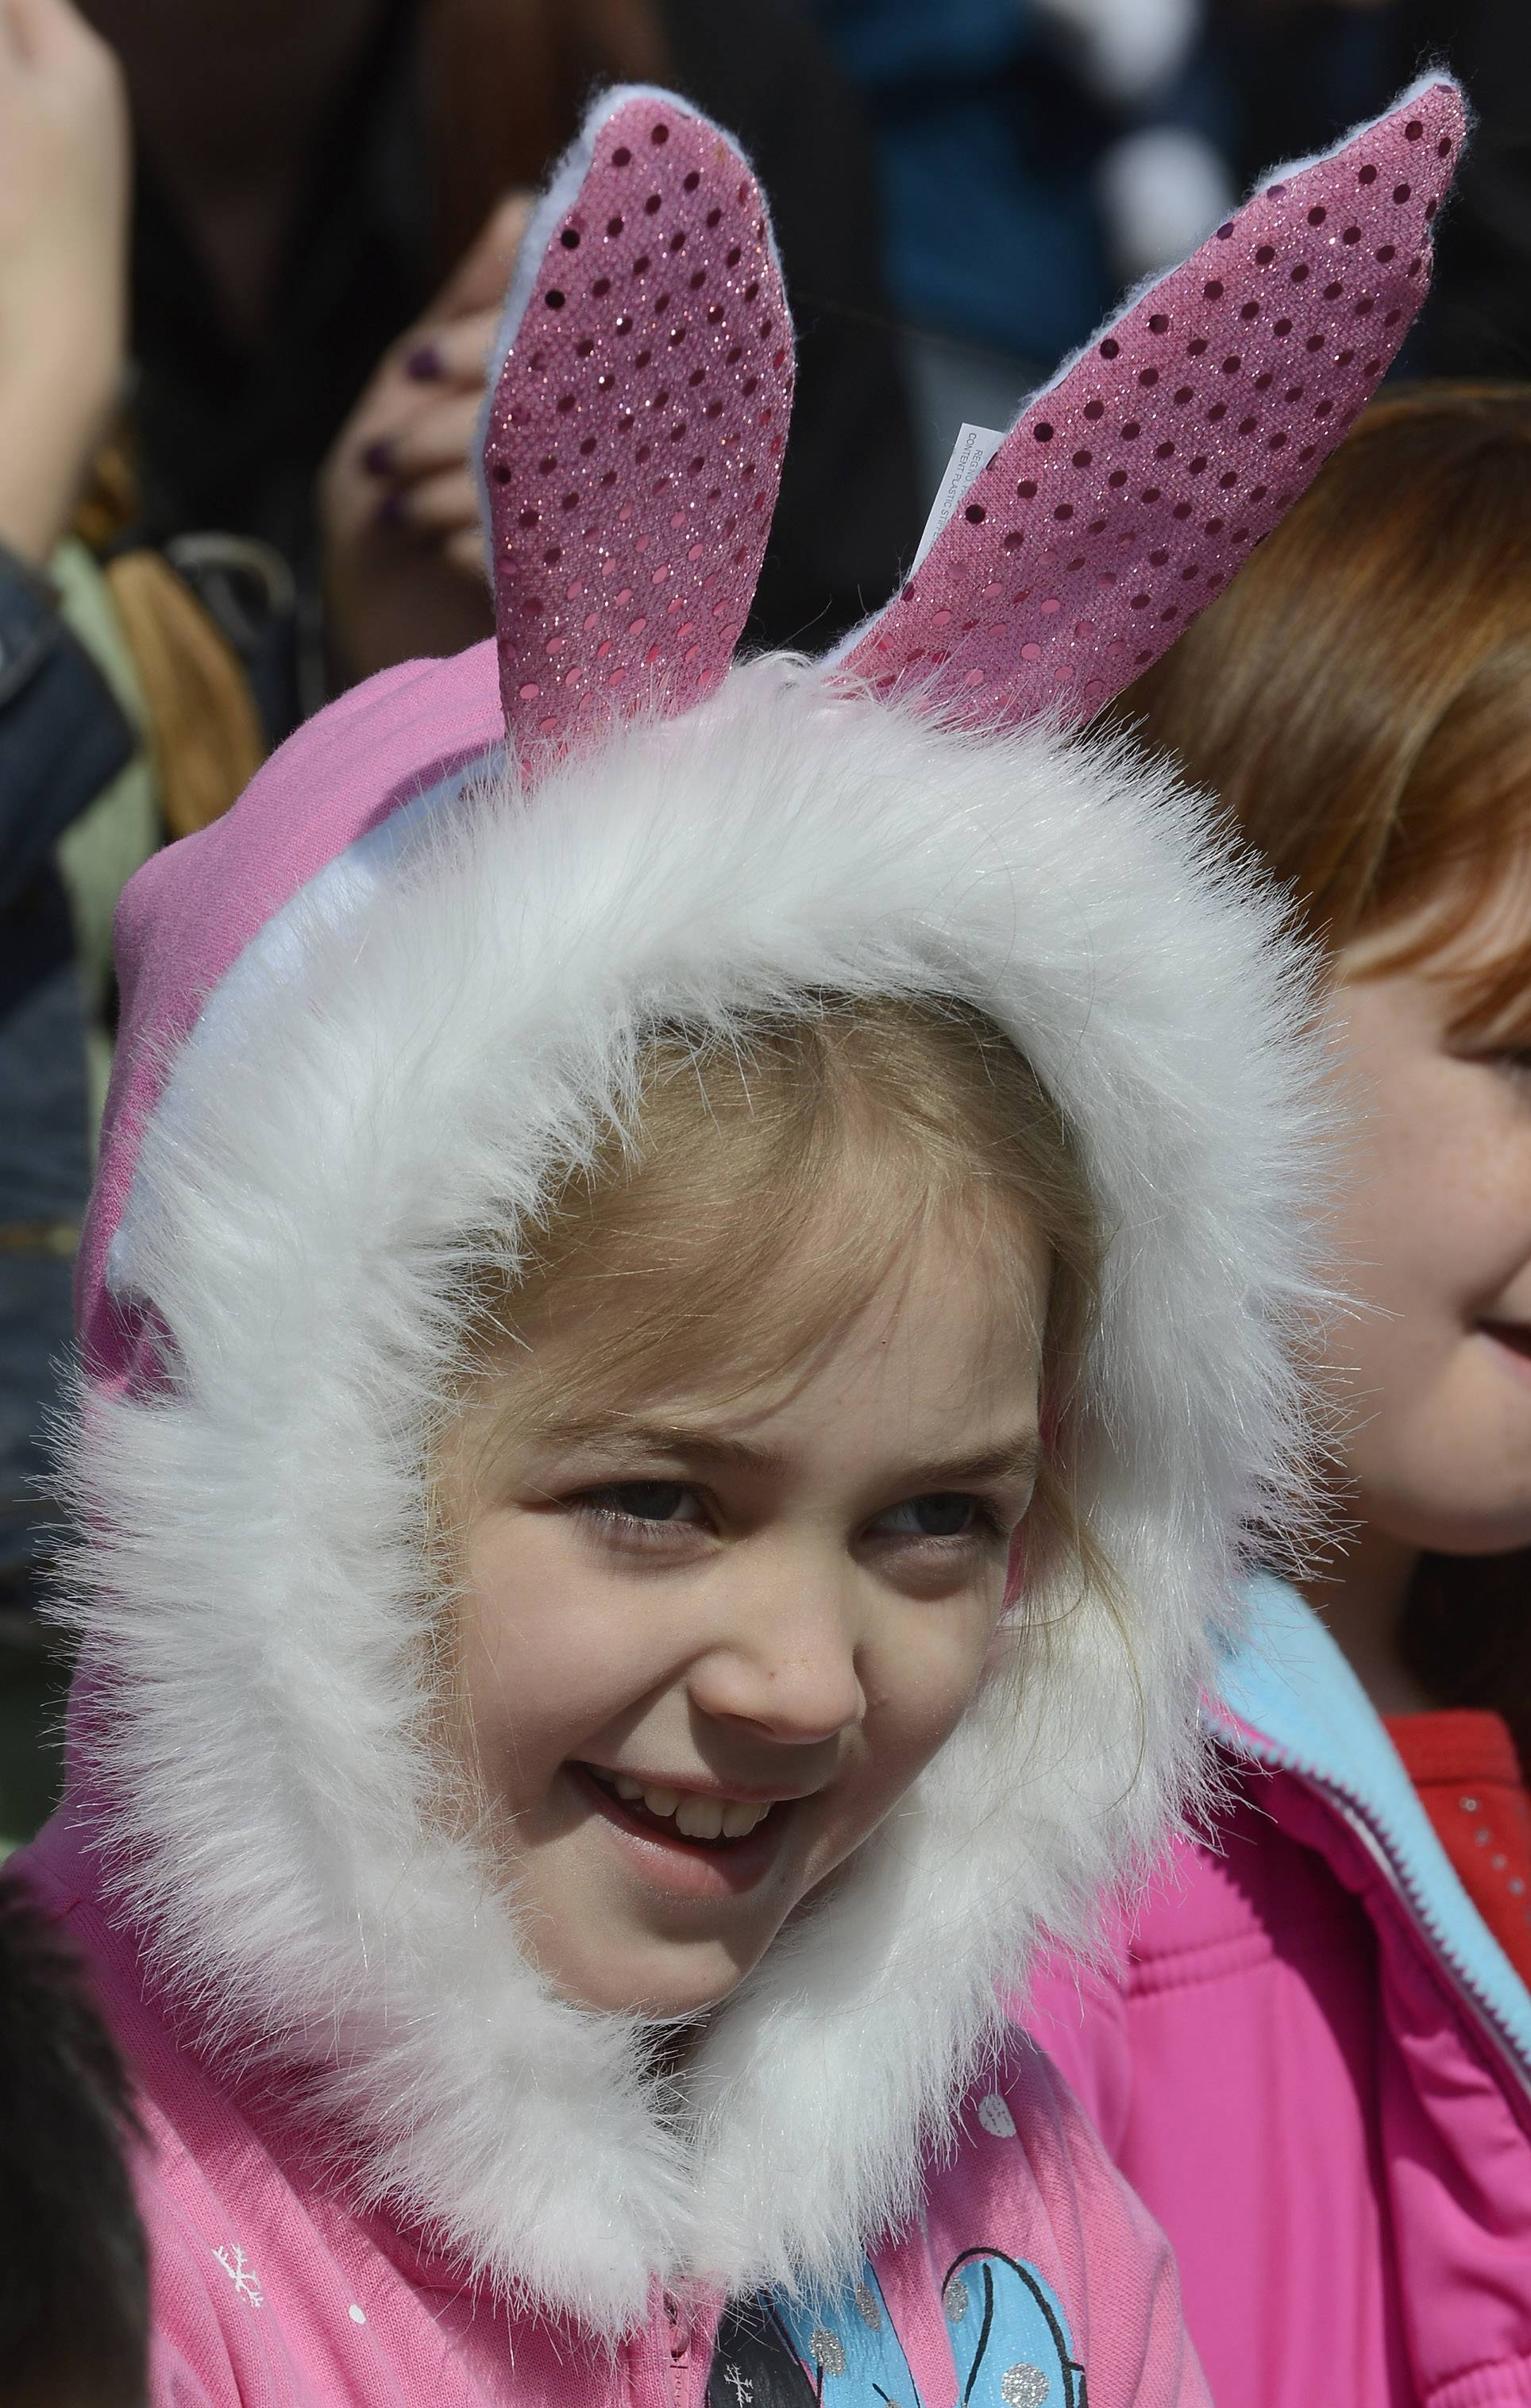 Megan Greenhill, 8, of Trevor, Wis., watches as Saturday's Easter Parade approaches on Main Street in Antioch.